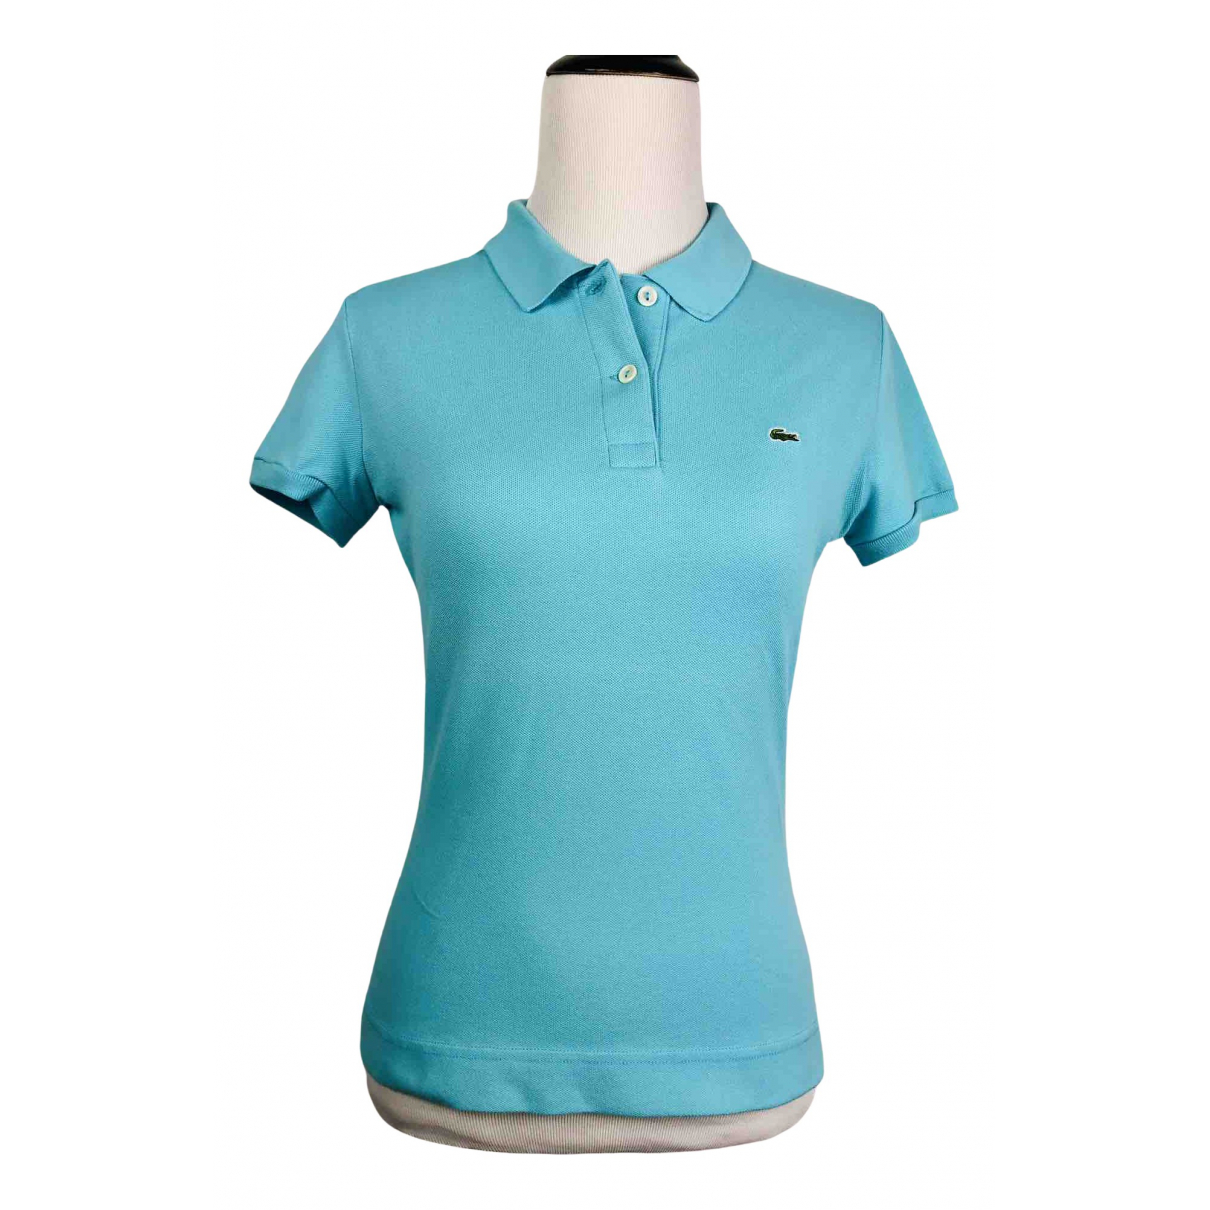 Lacoste N Turquoise Cotton  top for Women 8 US